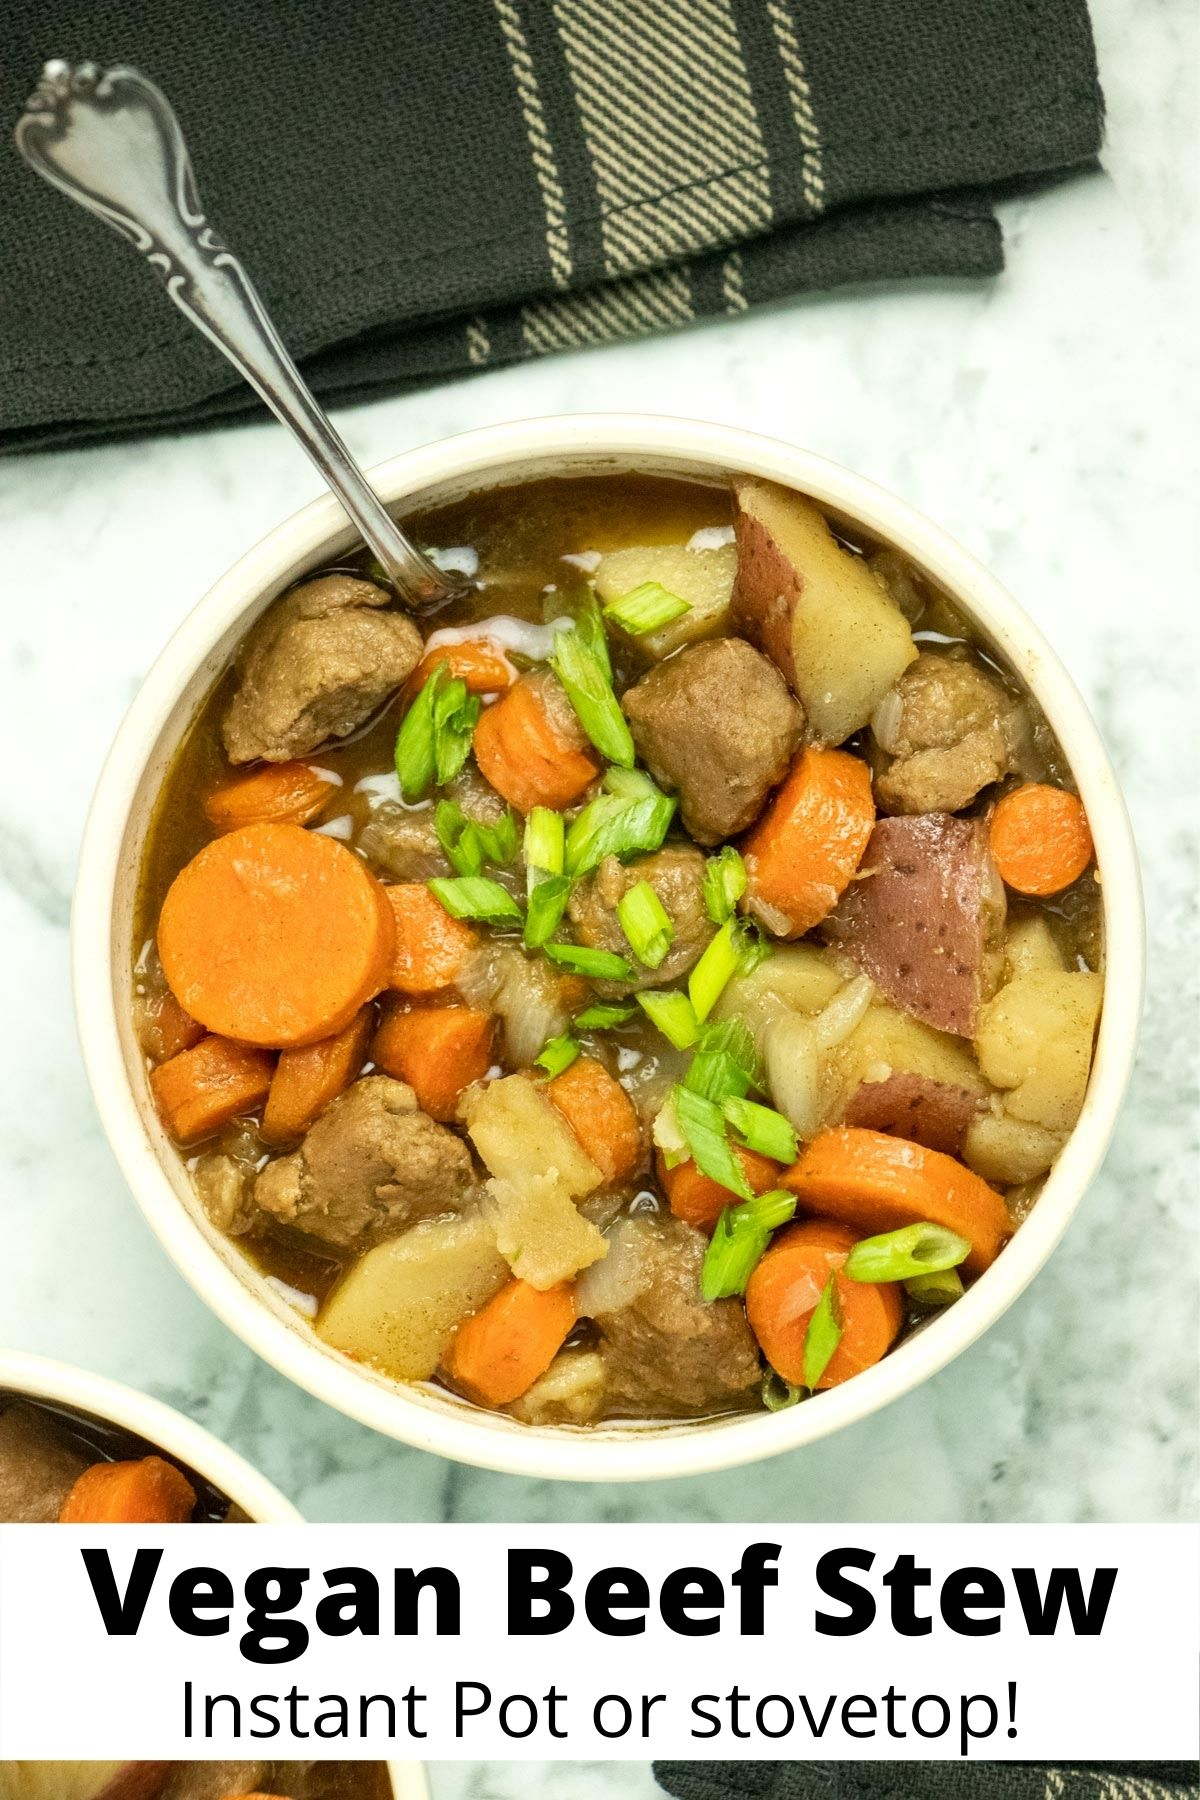 close-up of a bowl of vegan beef stew, text overlay